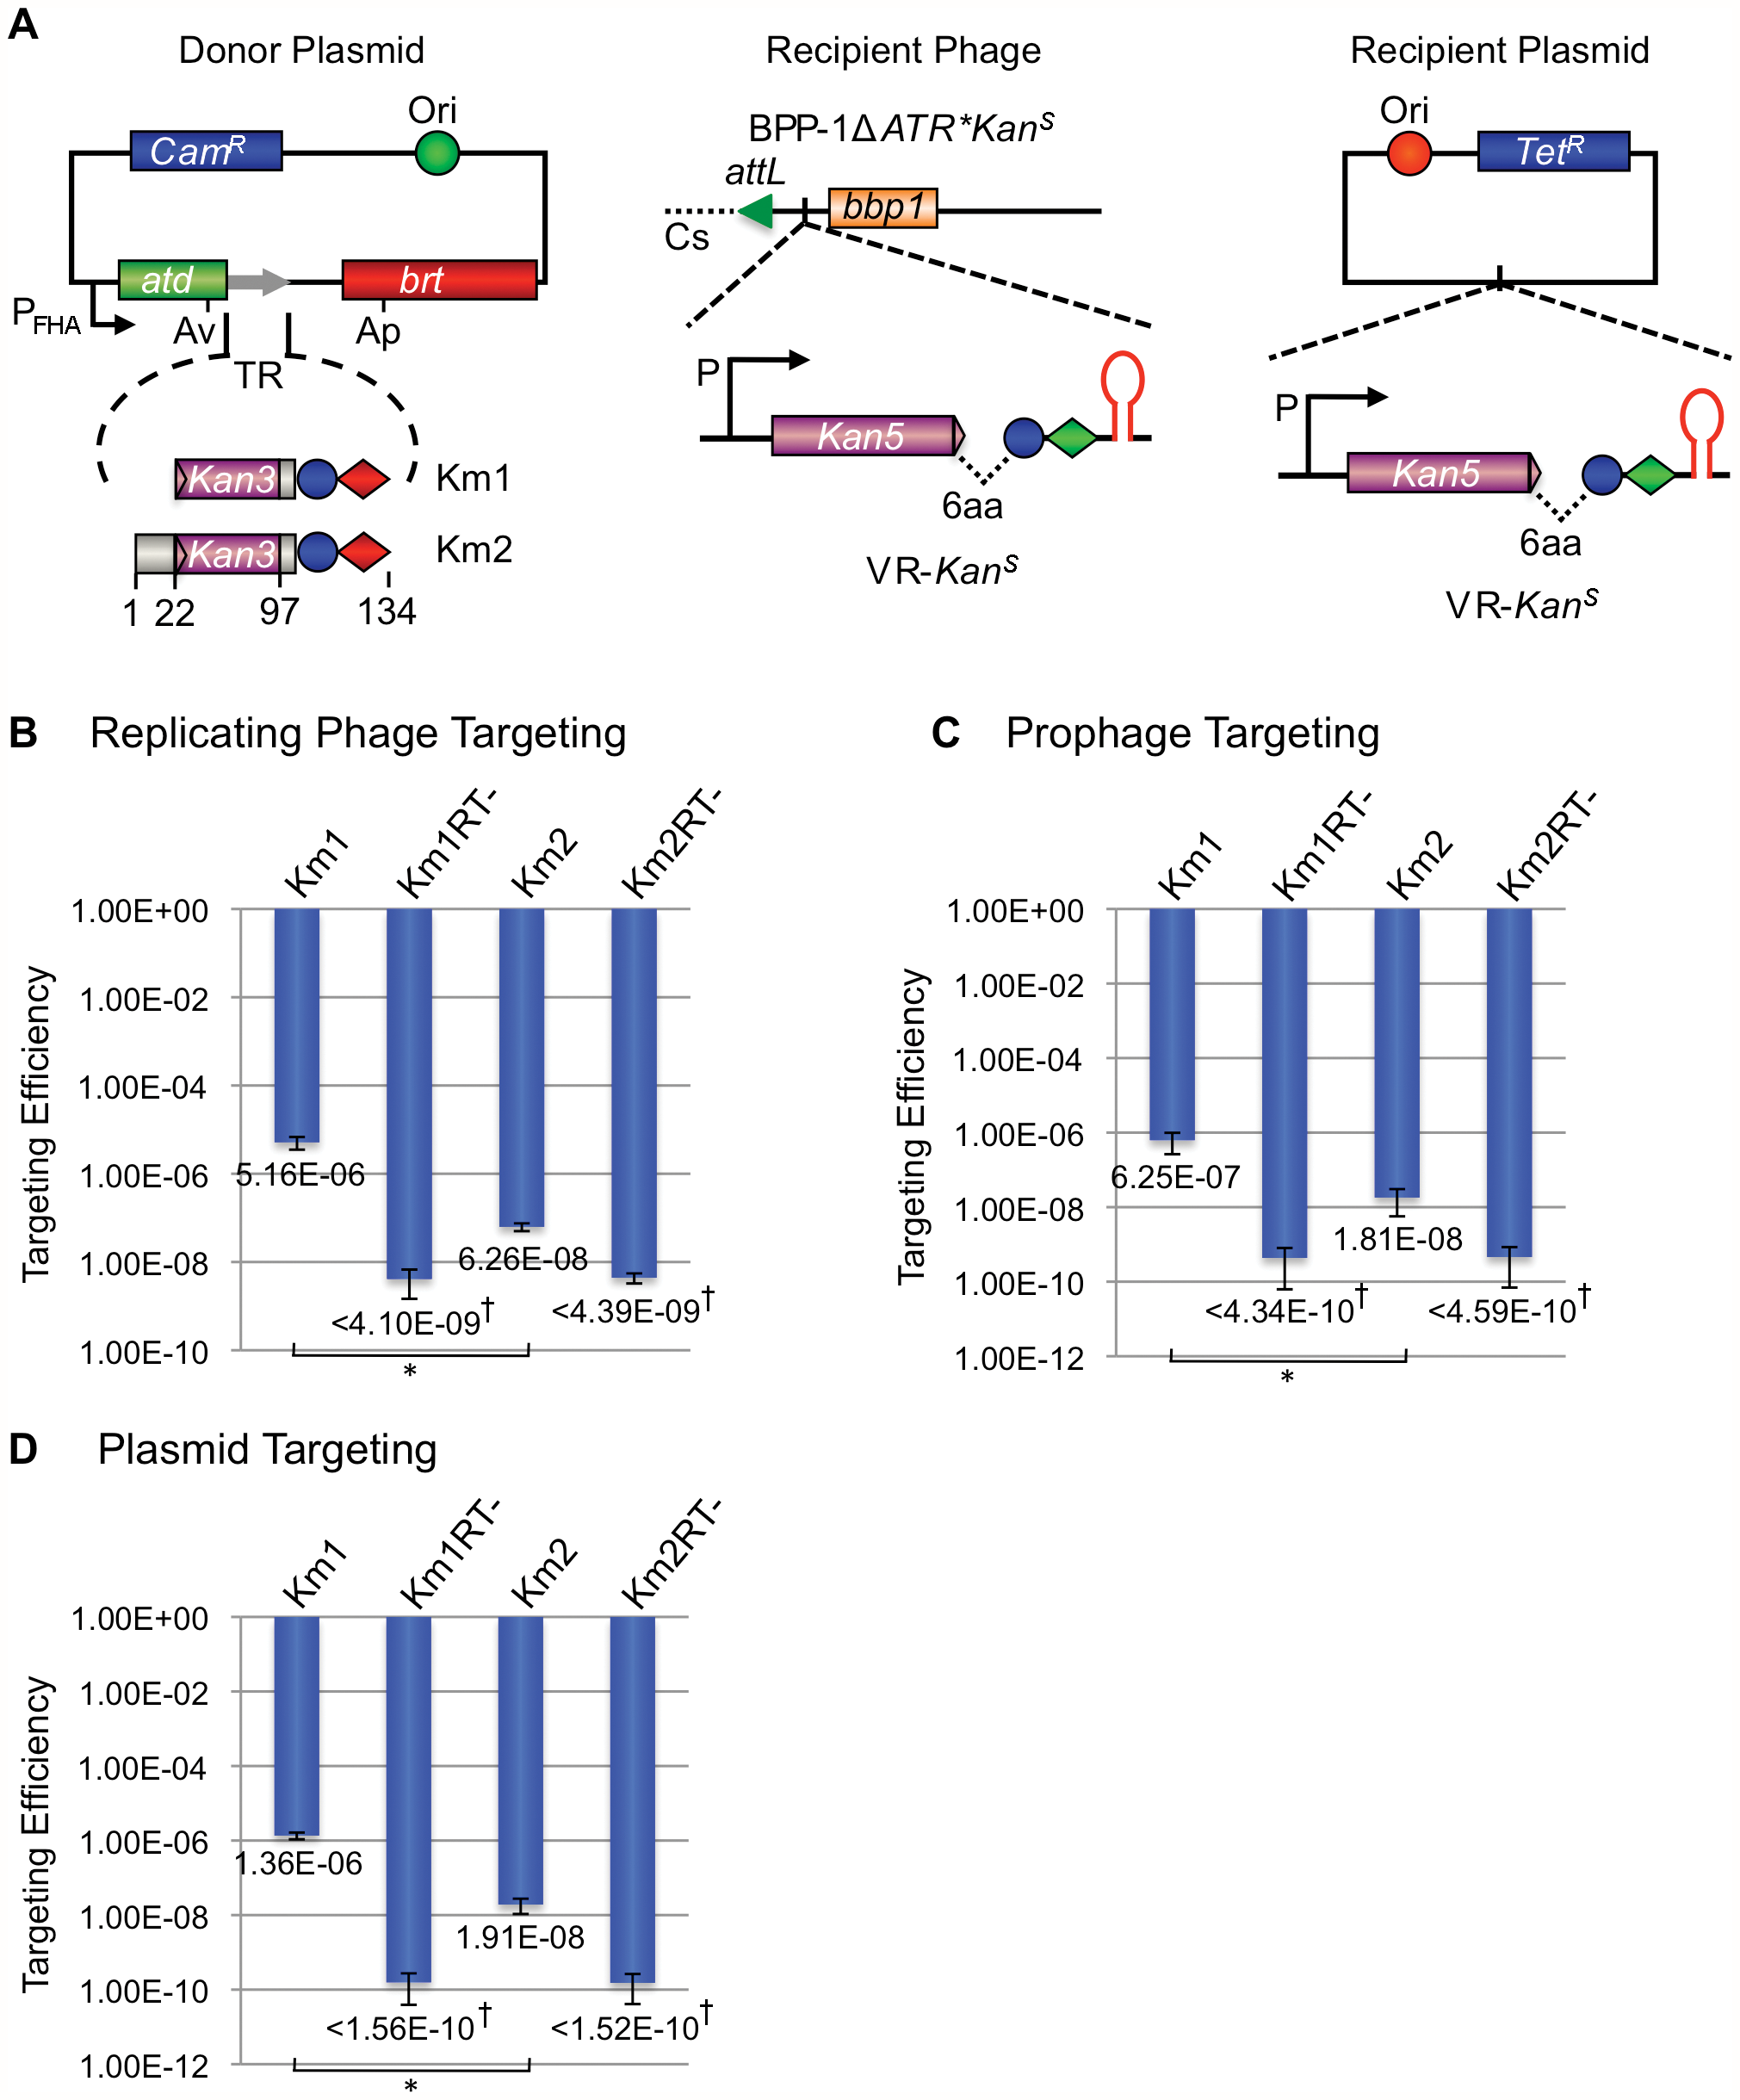 The BPP-1 DGR can be engineered to target a kanamycin-resistance gene.